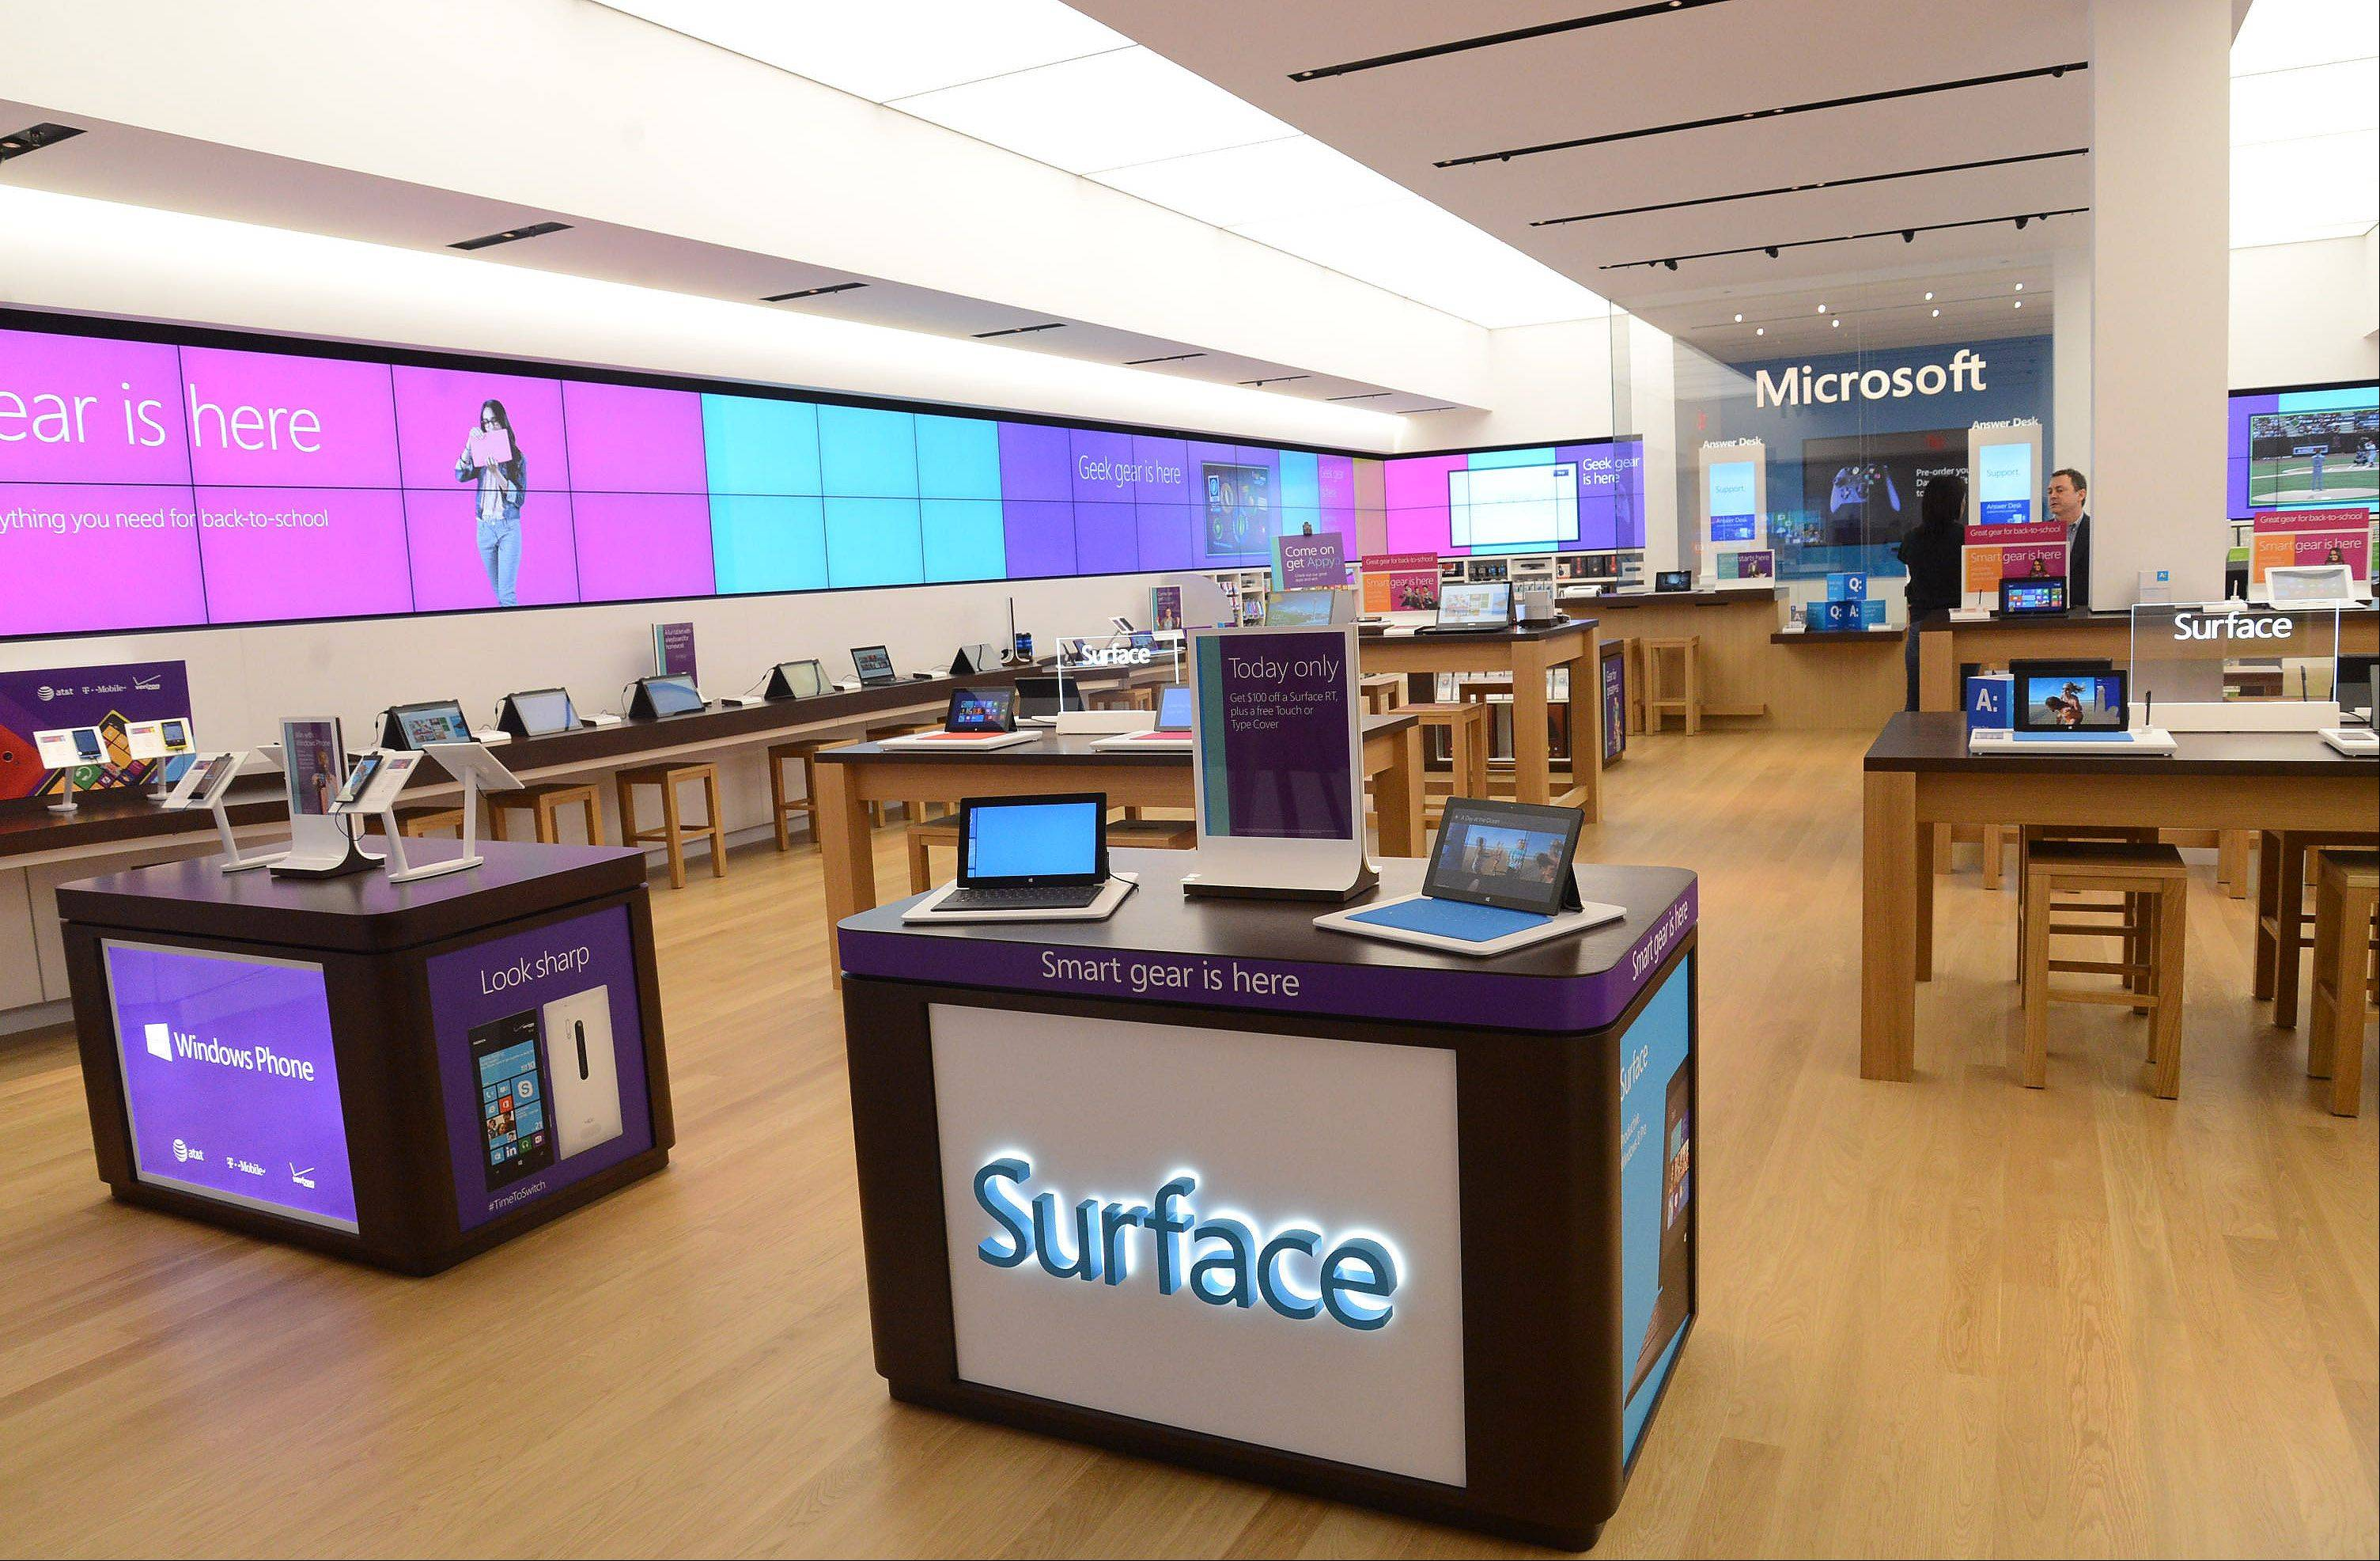 The Microsoft store, wrapped inside with an LED screen ribbon, will open today at 10:30 a.m.